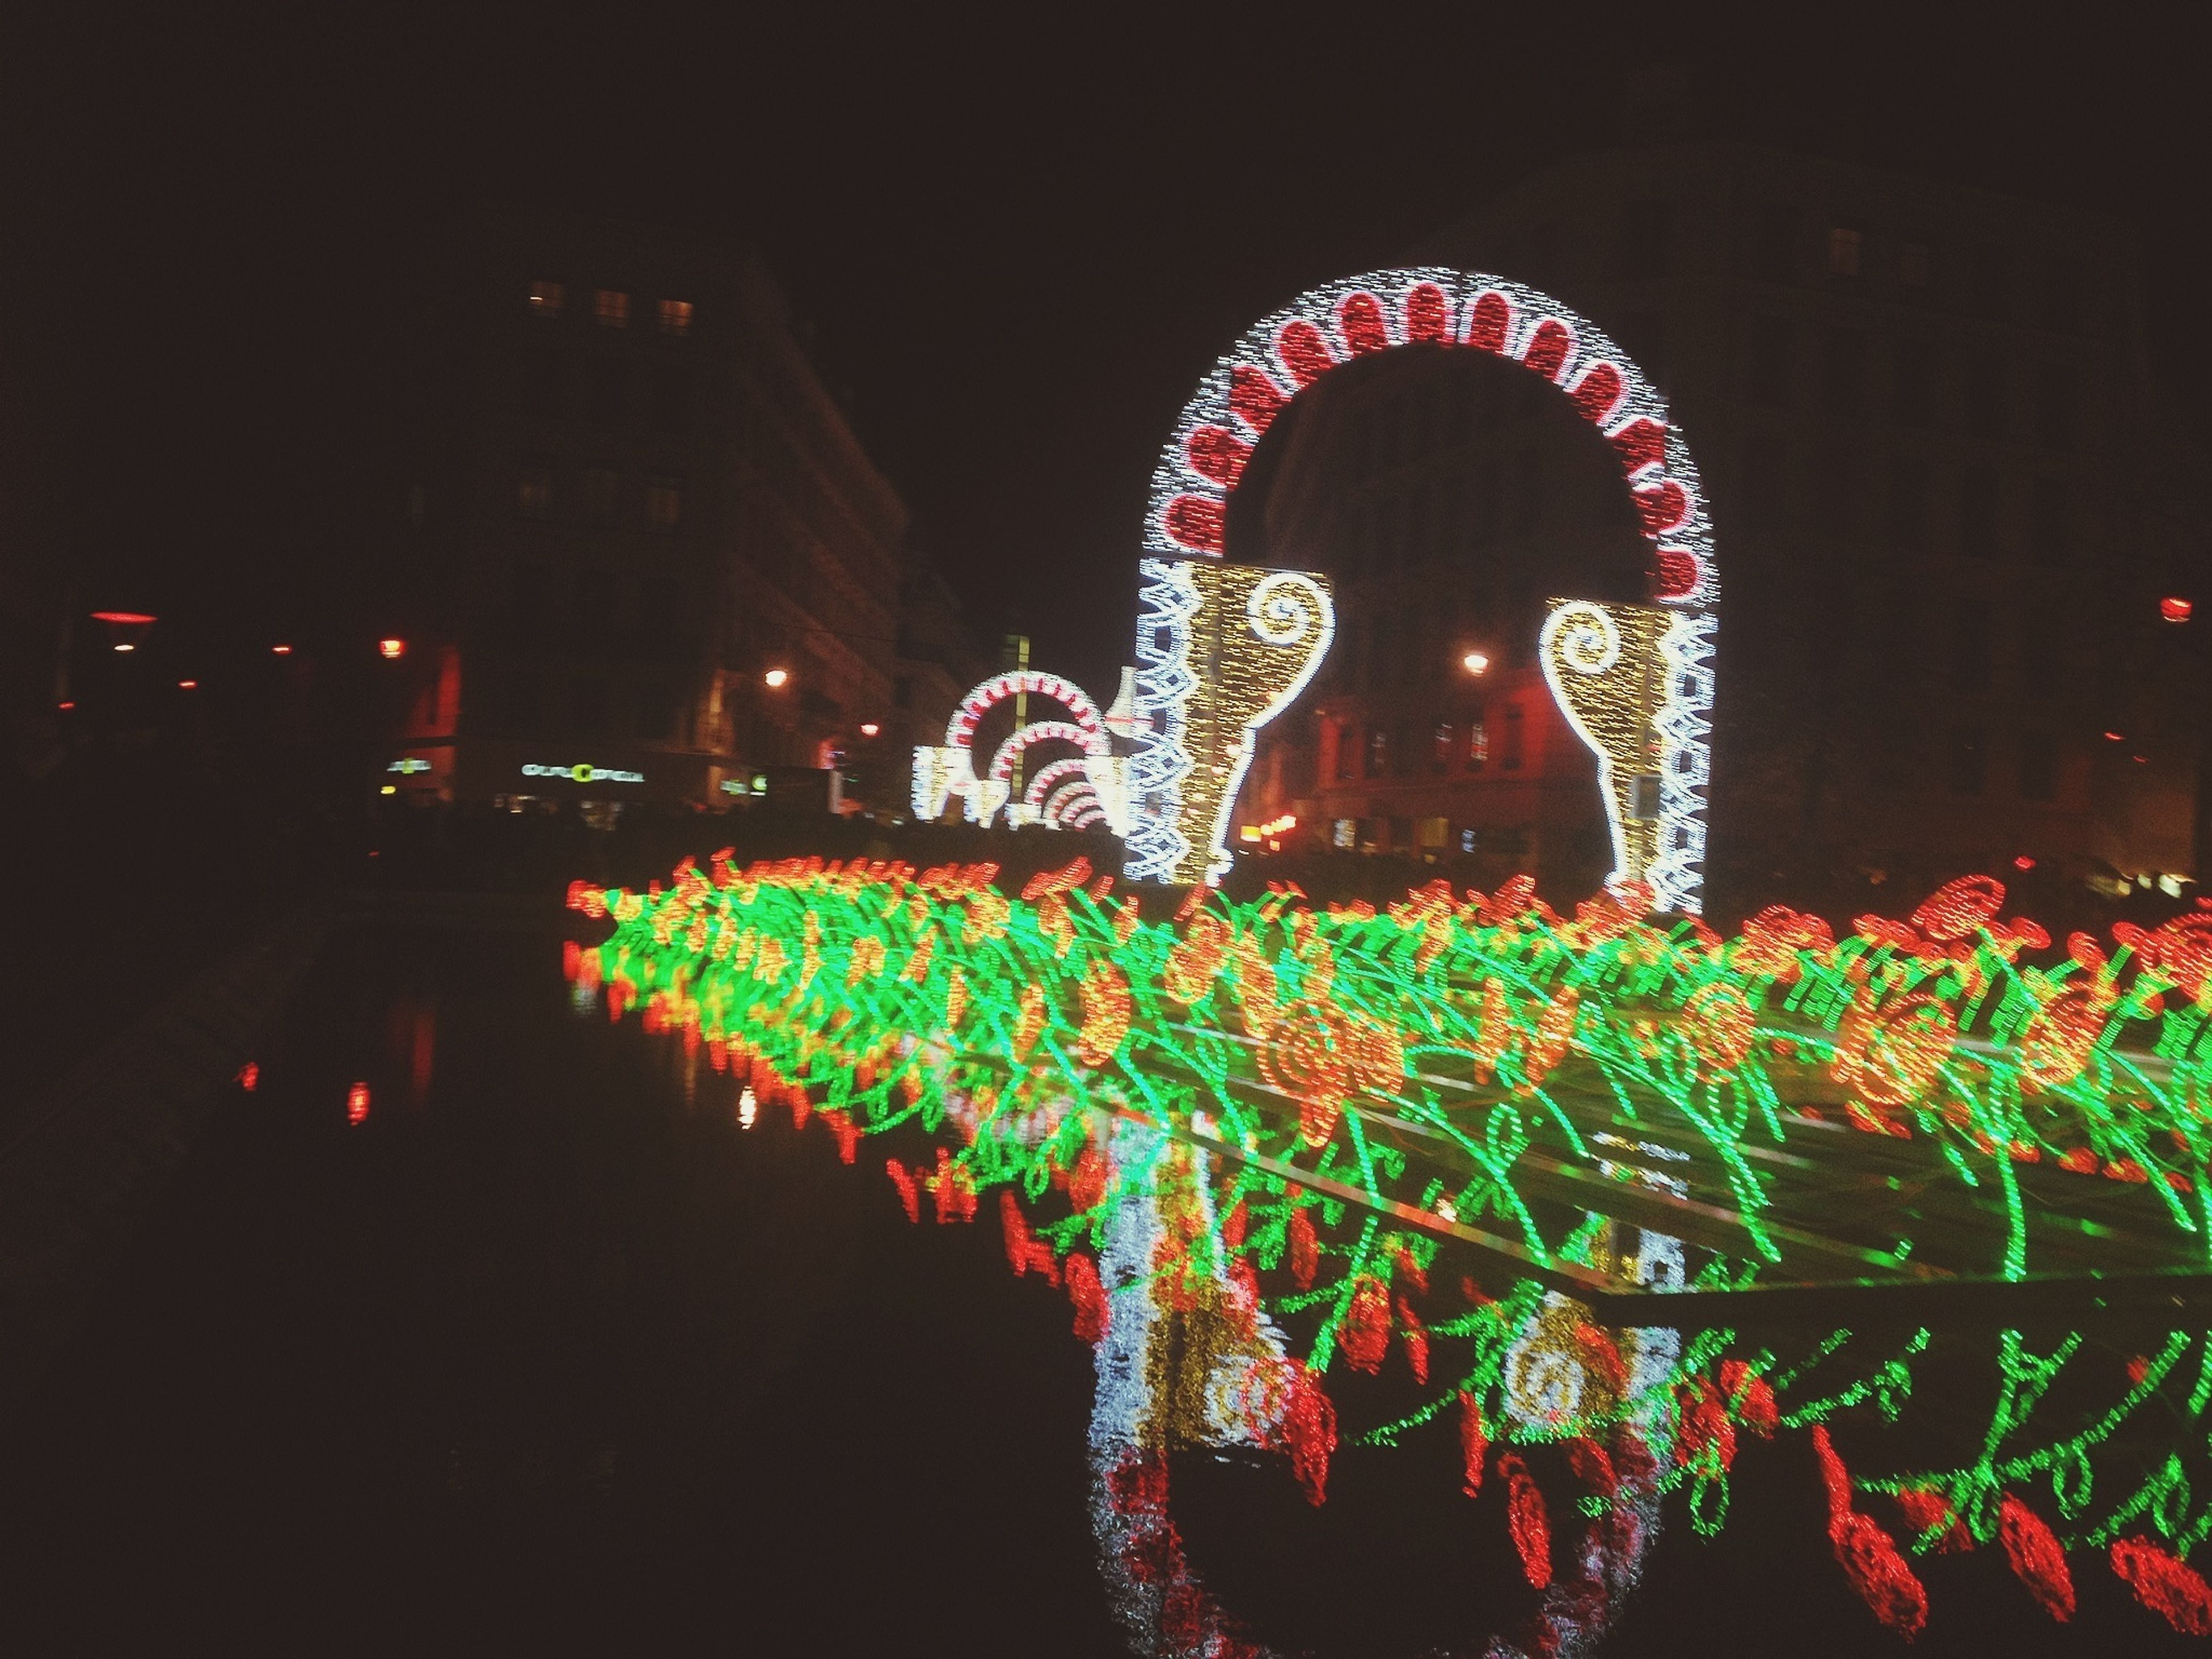 night, illuminated, arts culture and entertainment, long exposure, celebration, lighting equipment, motion, multi colored, leisure activity, blurred motion, outdoors, decoration, amusement park, tree, cultures, glowing, men, light - natural phenomenon, sky